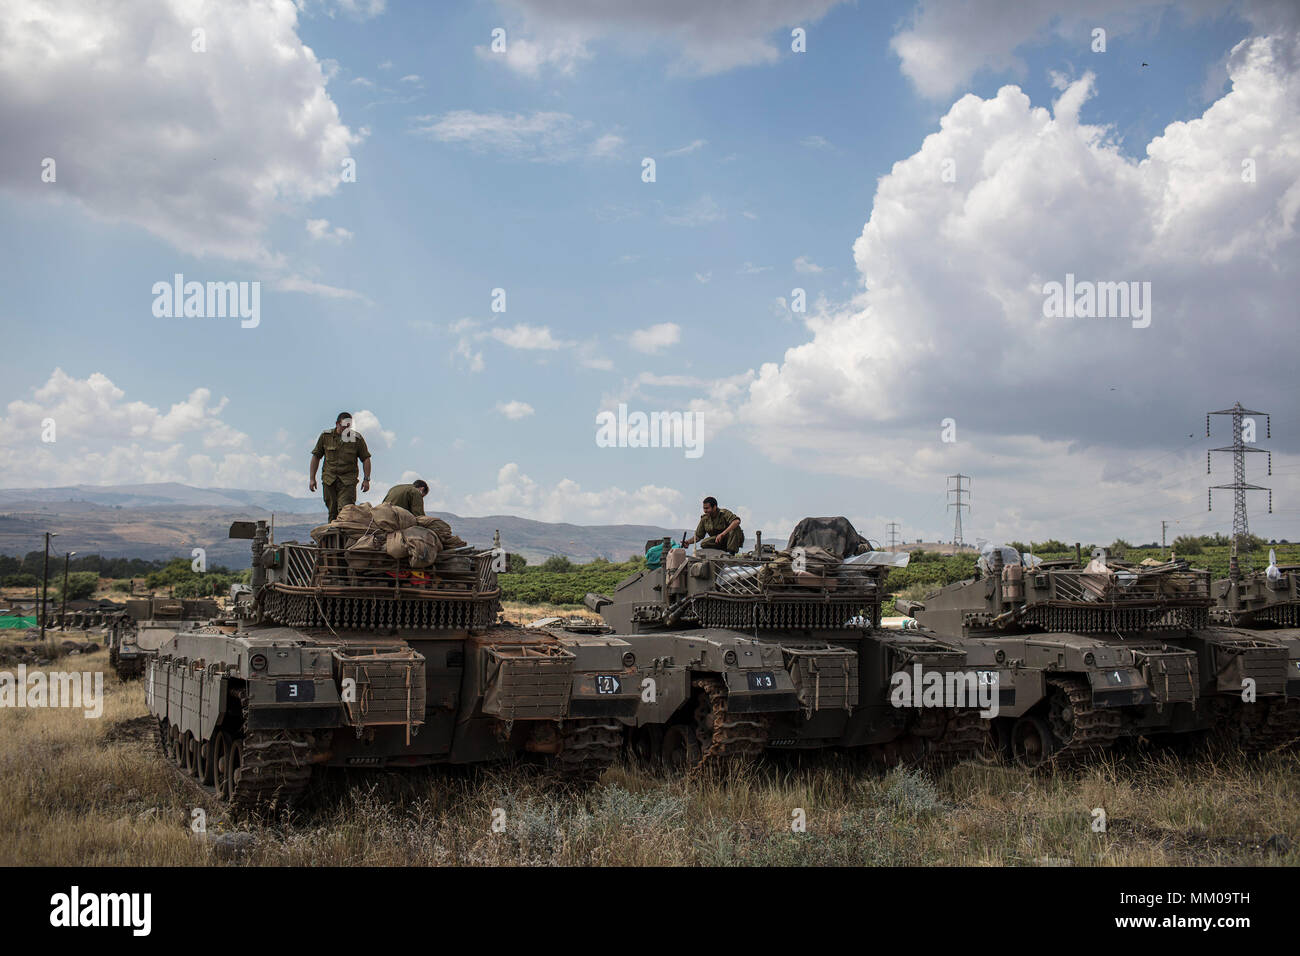 Golan Heights, Israel. 09th May, 2018. Israeli soldiers on top of a Merkava Mark IV tank that deployed along the border with Syria, in Golan Heights, Israel, 09 May 2018. Israel's army is mobilizing reservists due to concerns about a possible attacks by Iranian forces in Syria. Credit: Ilia Yefimovich/dpa/Alamy Live News - Stock Image